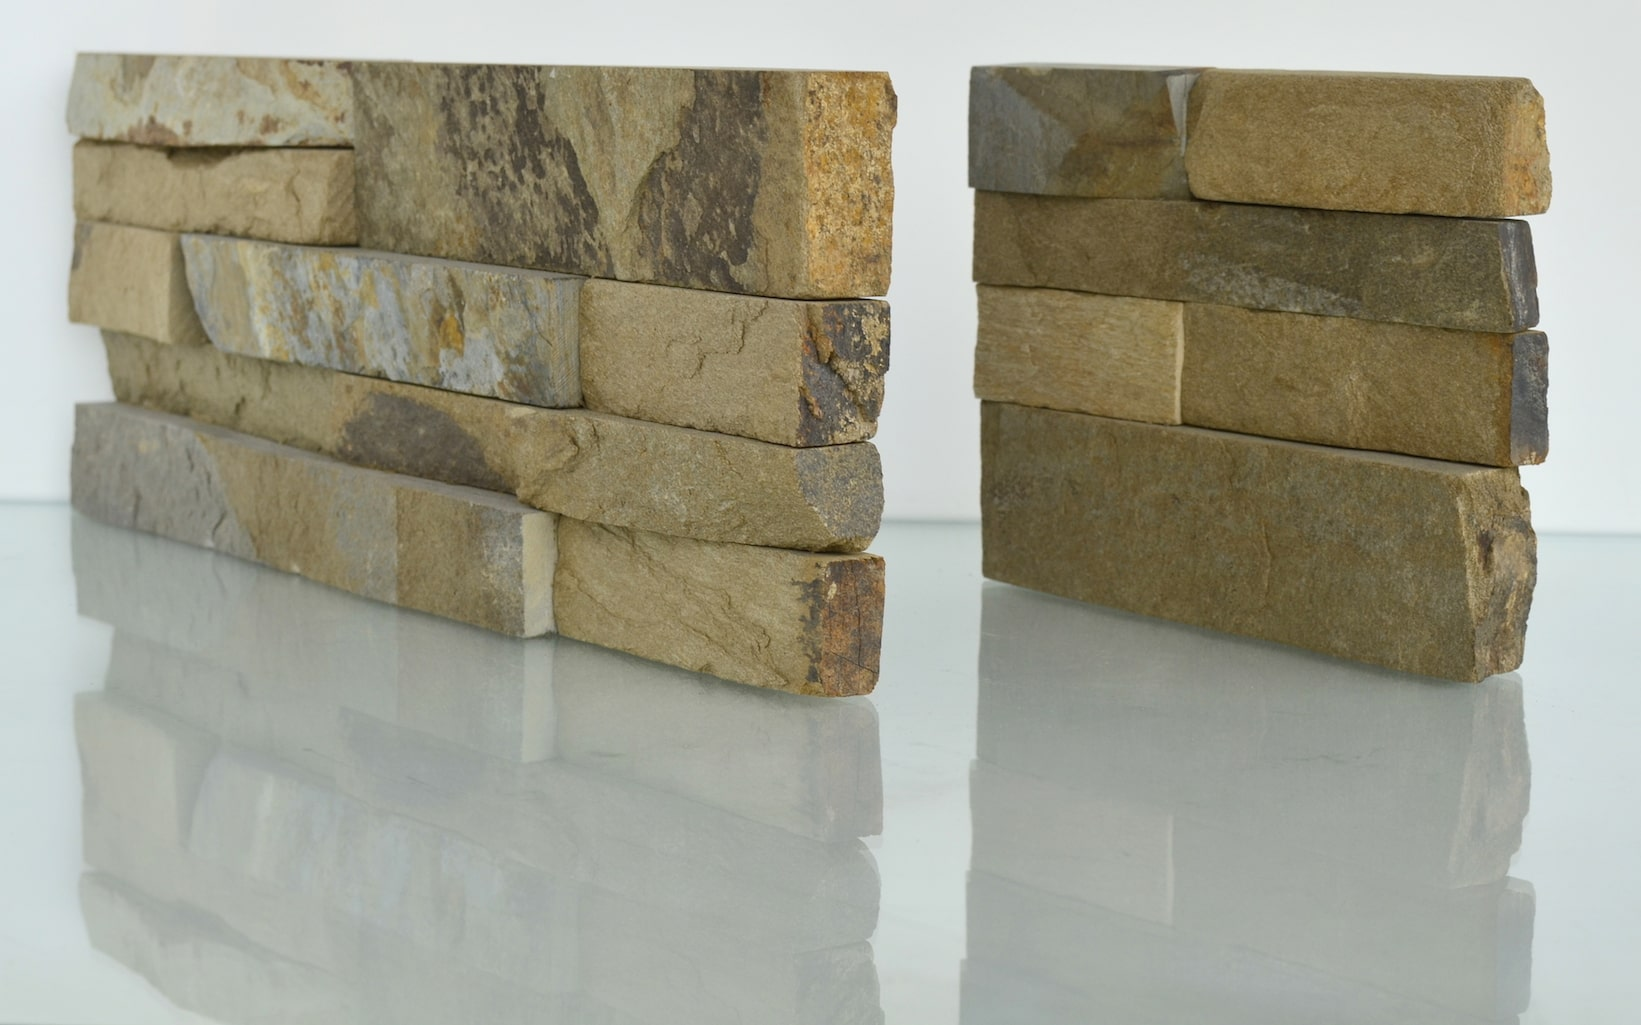 Studio Shot of a Natural End Panel of the Norstone Standard Series Rock Panel in Ochre Blend